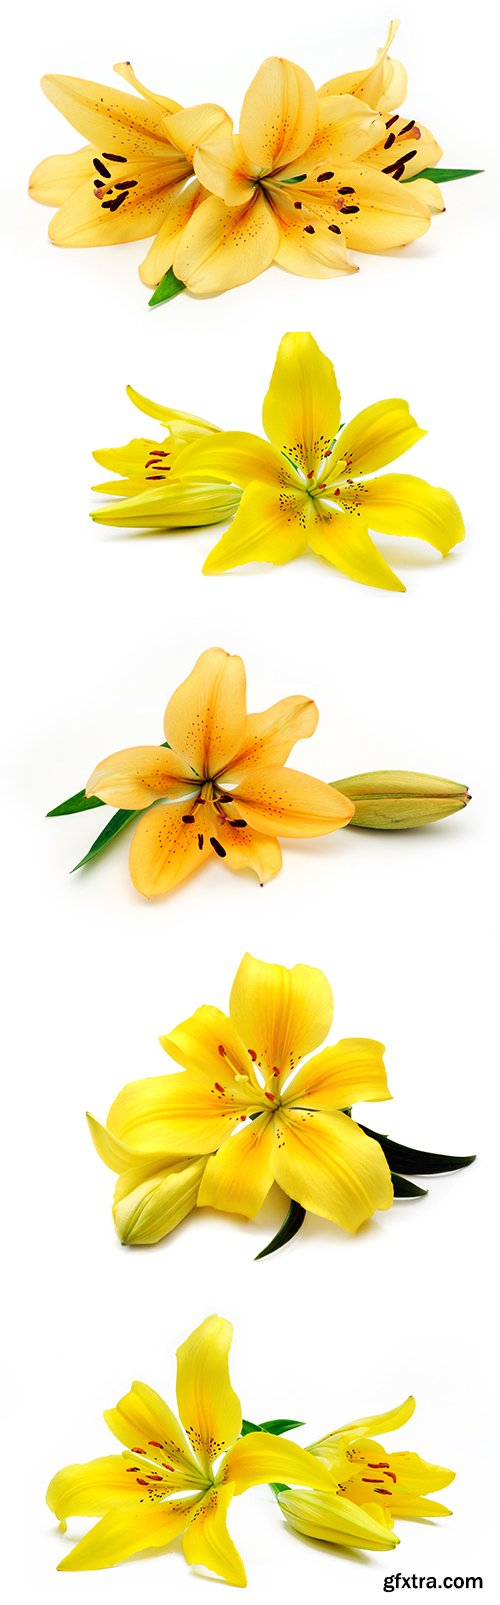 Yellow Lily Isolated - 8xJPGs